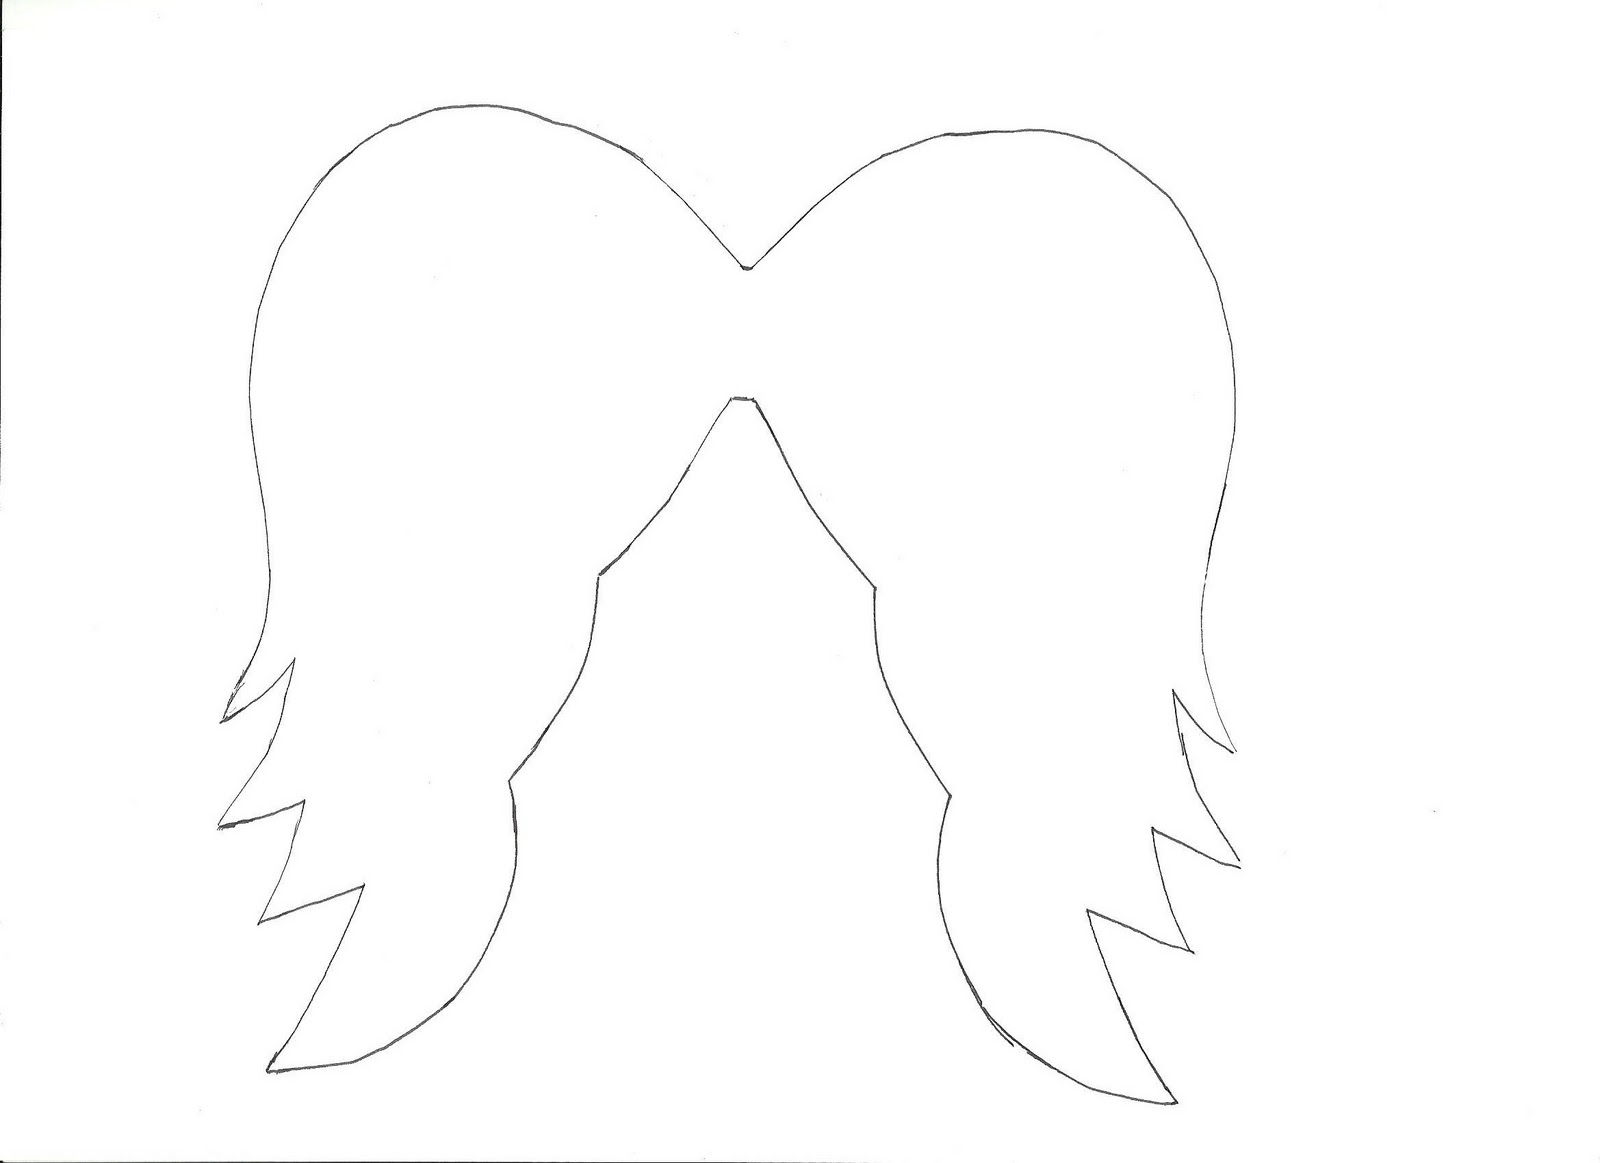 angel wing cut out template - photo #6